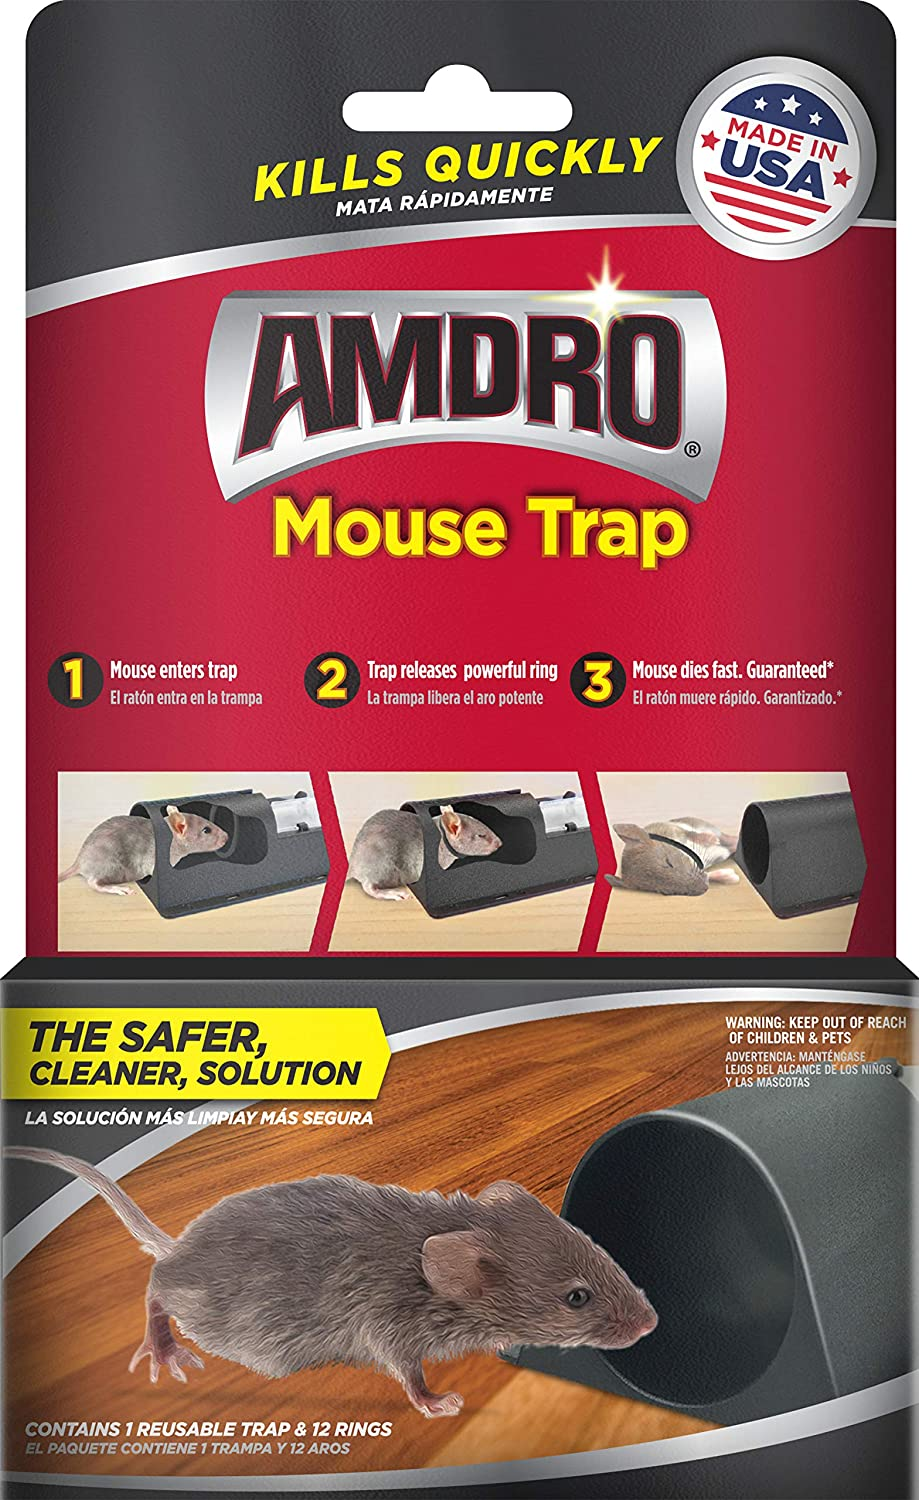 10x Powerful Spring Mouse Pests Traps Snap Catch Traps Outdoor Gardening Tools